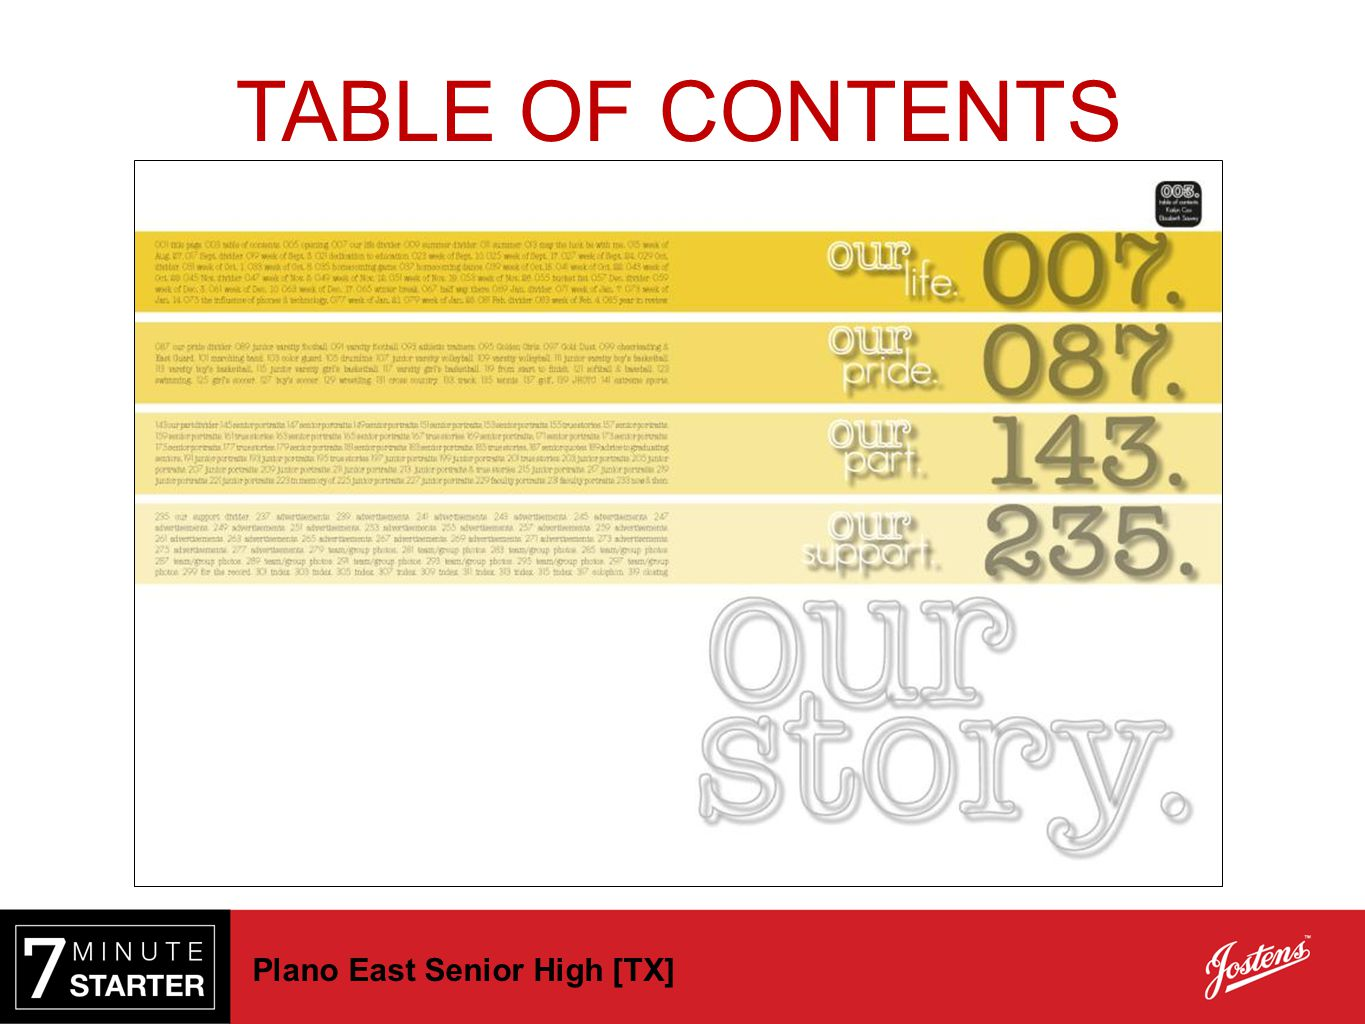 TABLE OF CONTENTS Plano East Senior High [TX]